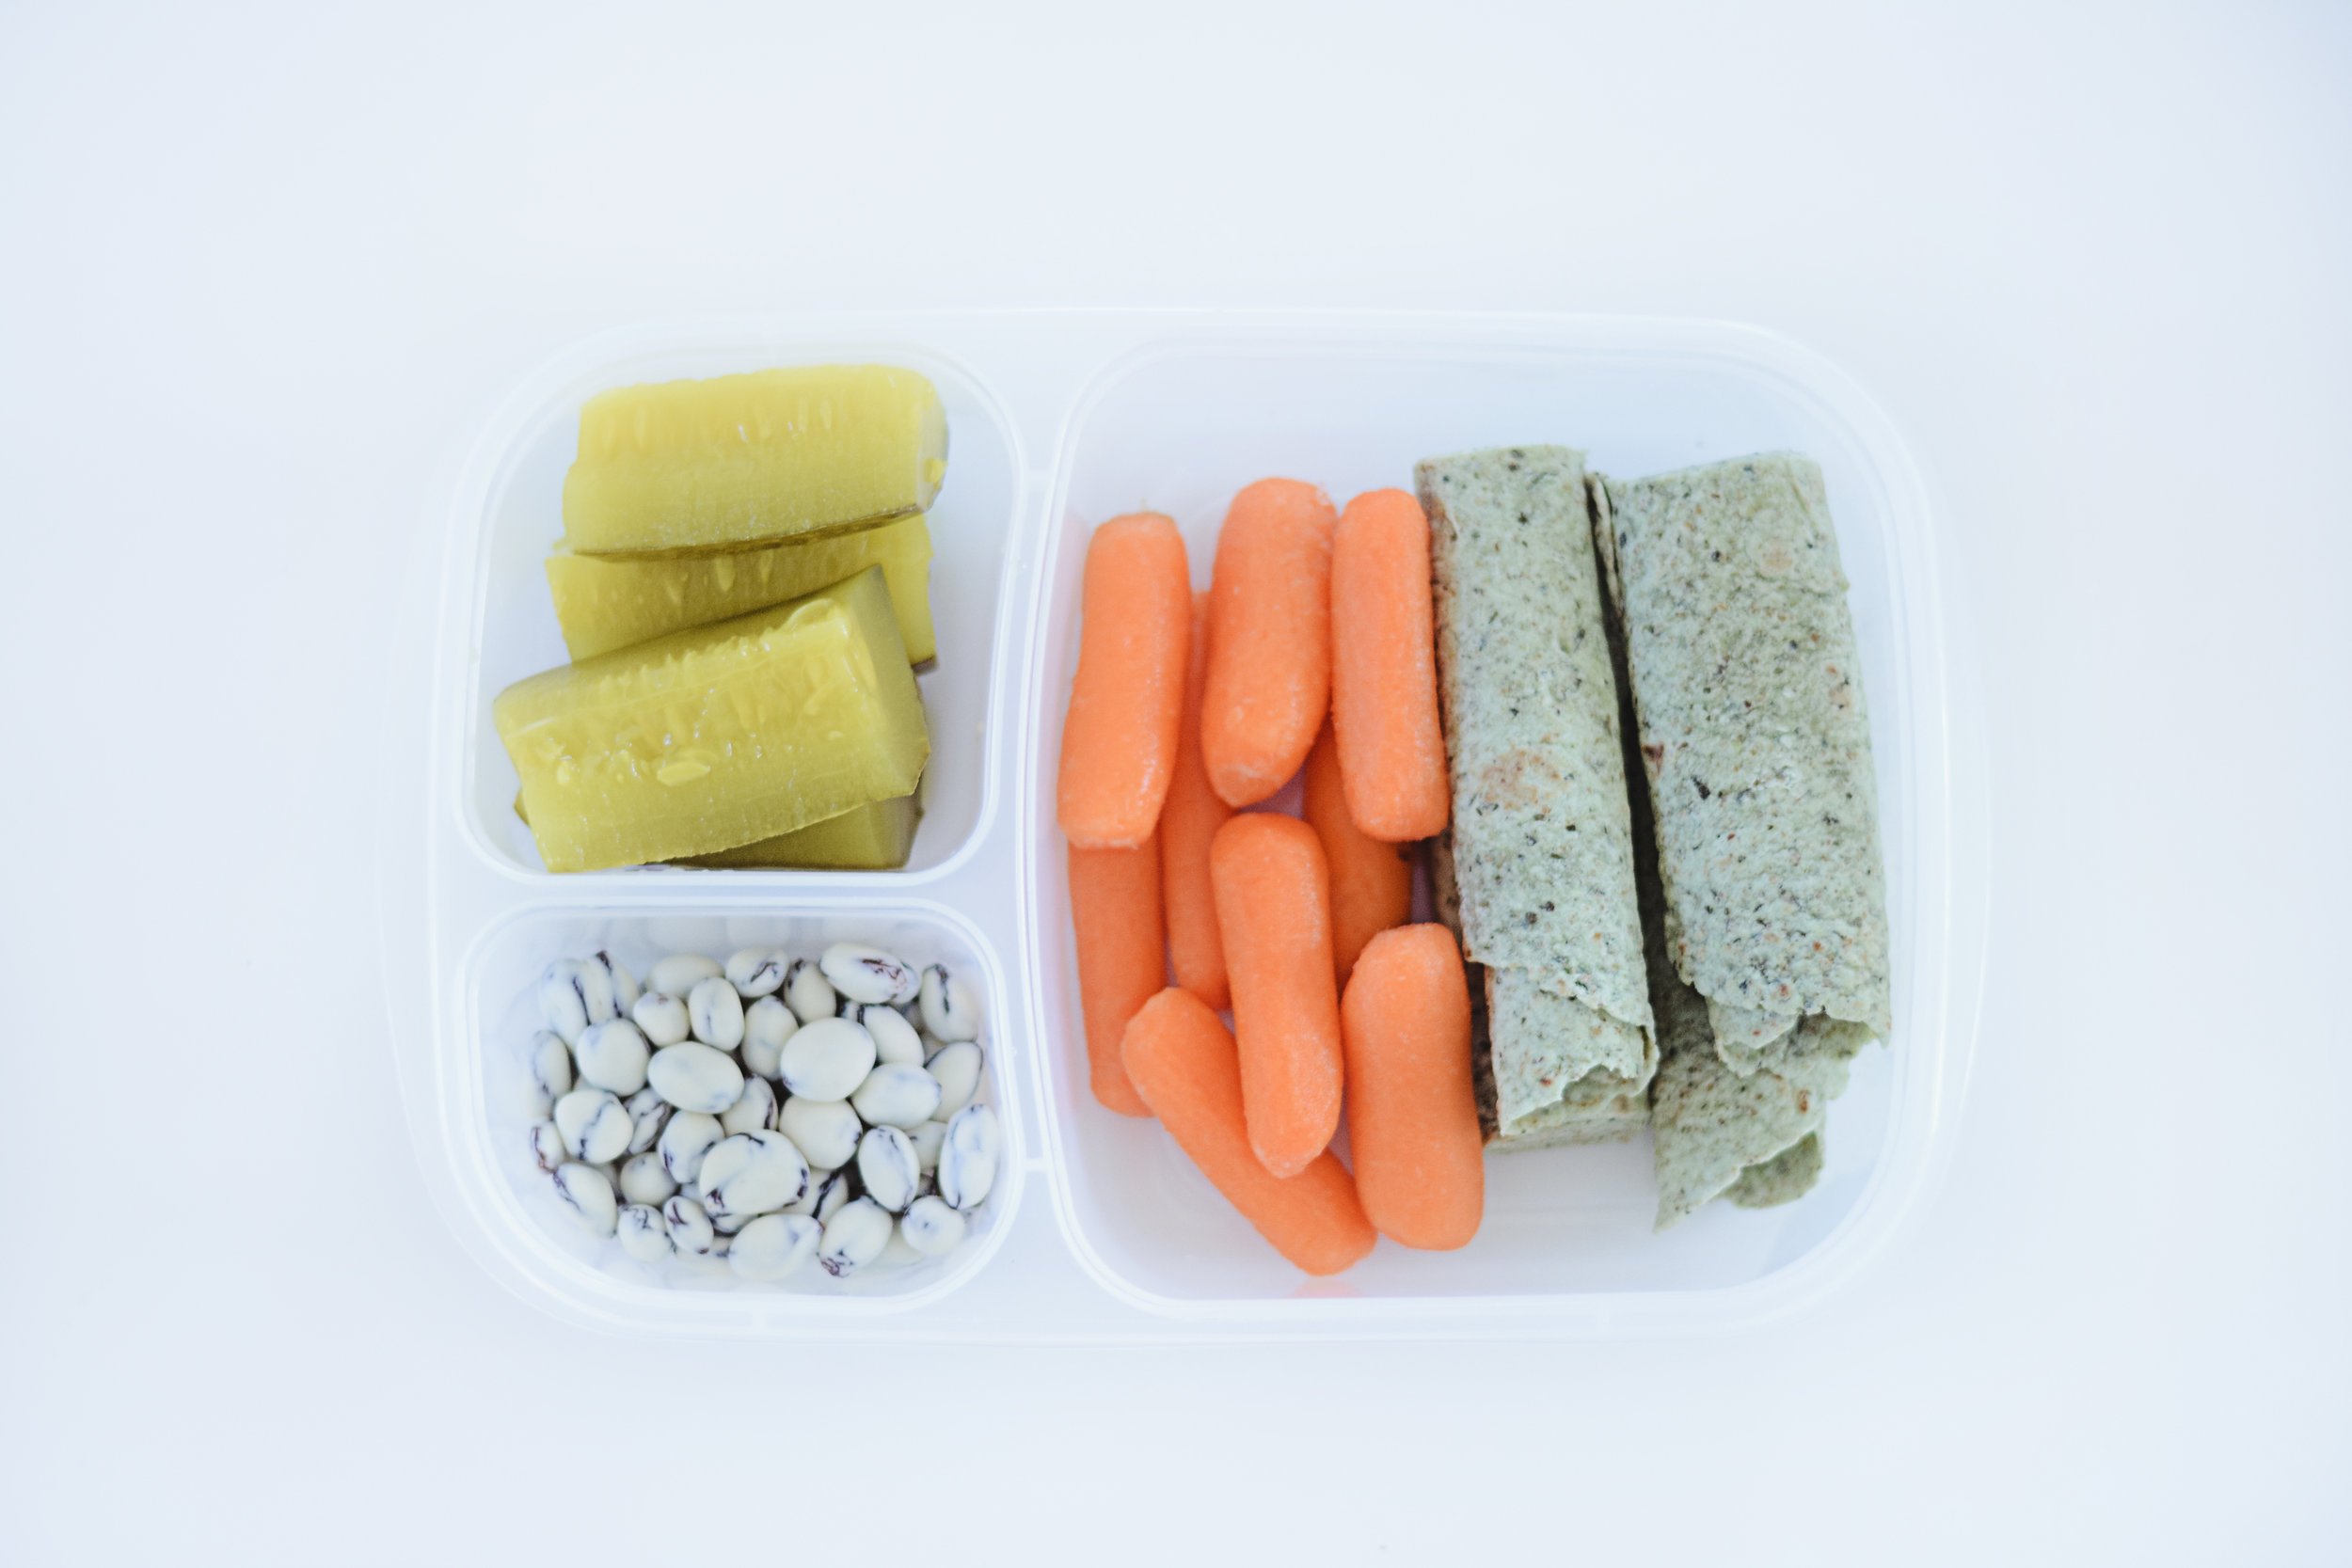 lunches26.jpg